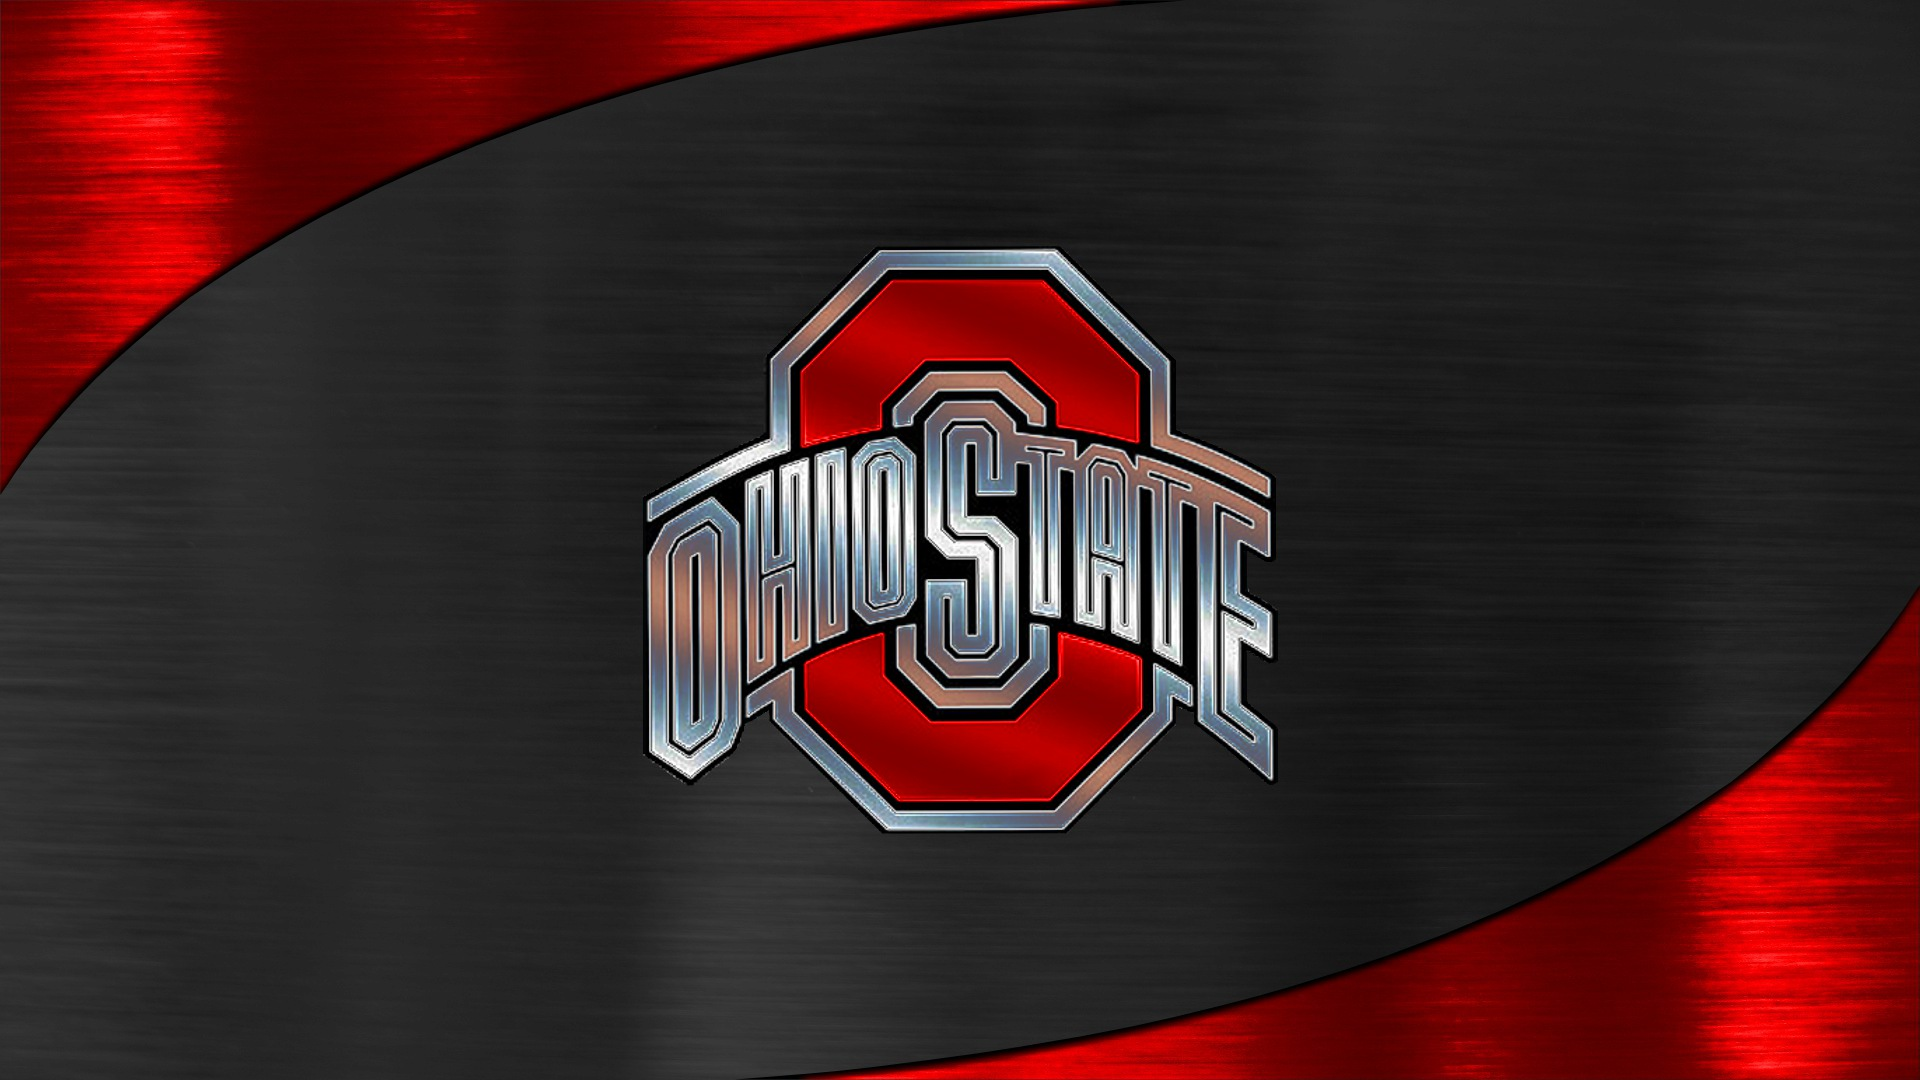 Ohio State Buckeyes Football Backgrounds Download 1920x1080